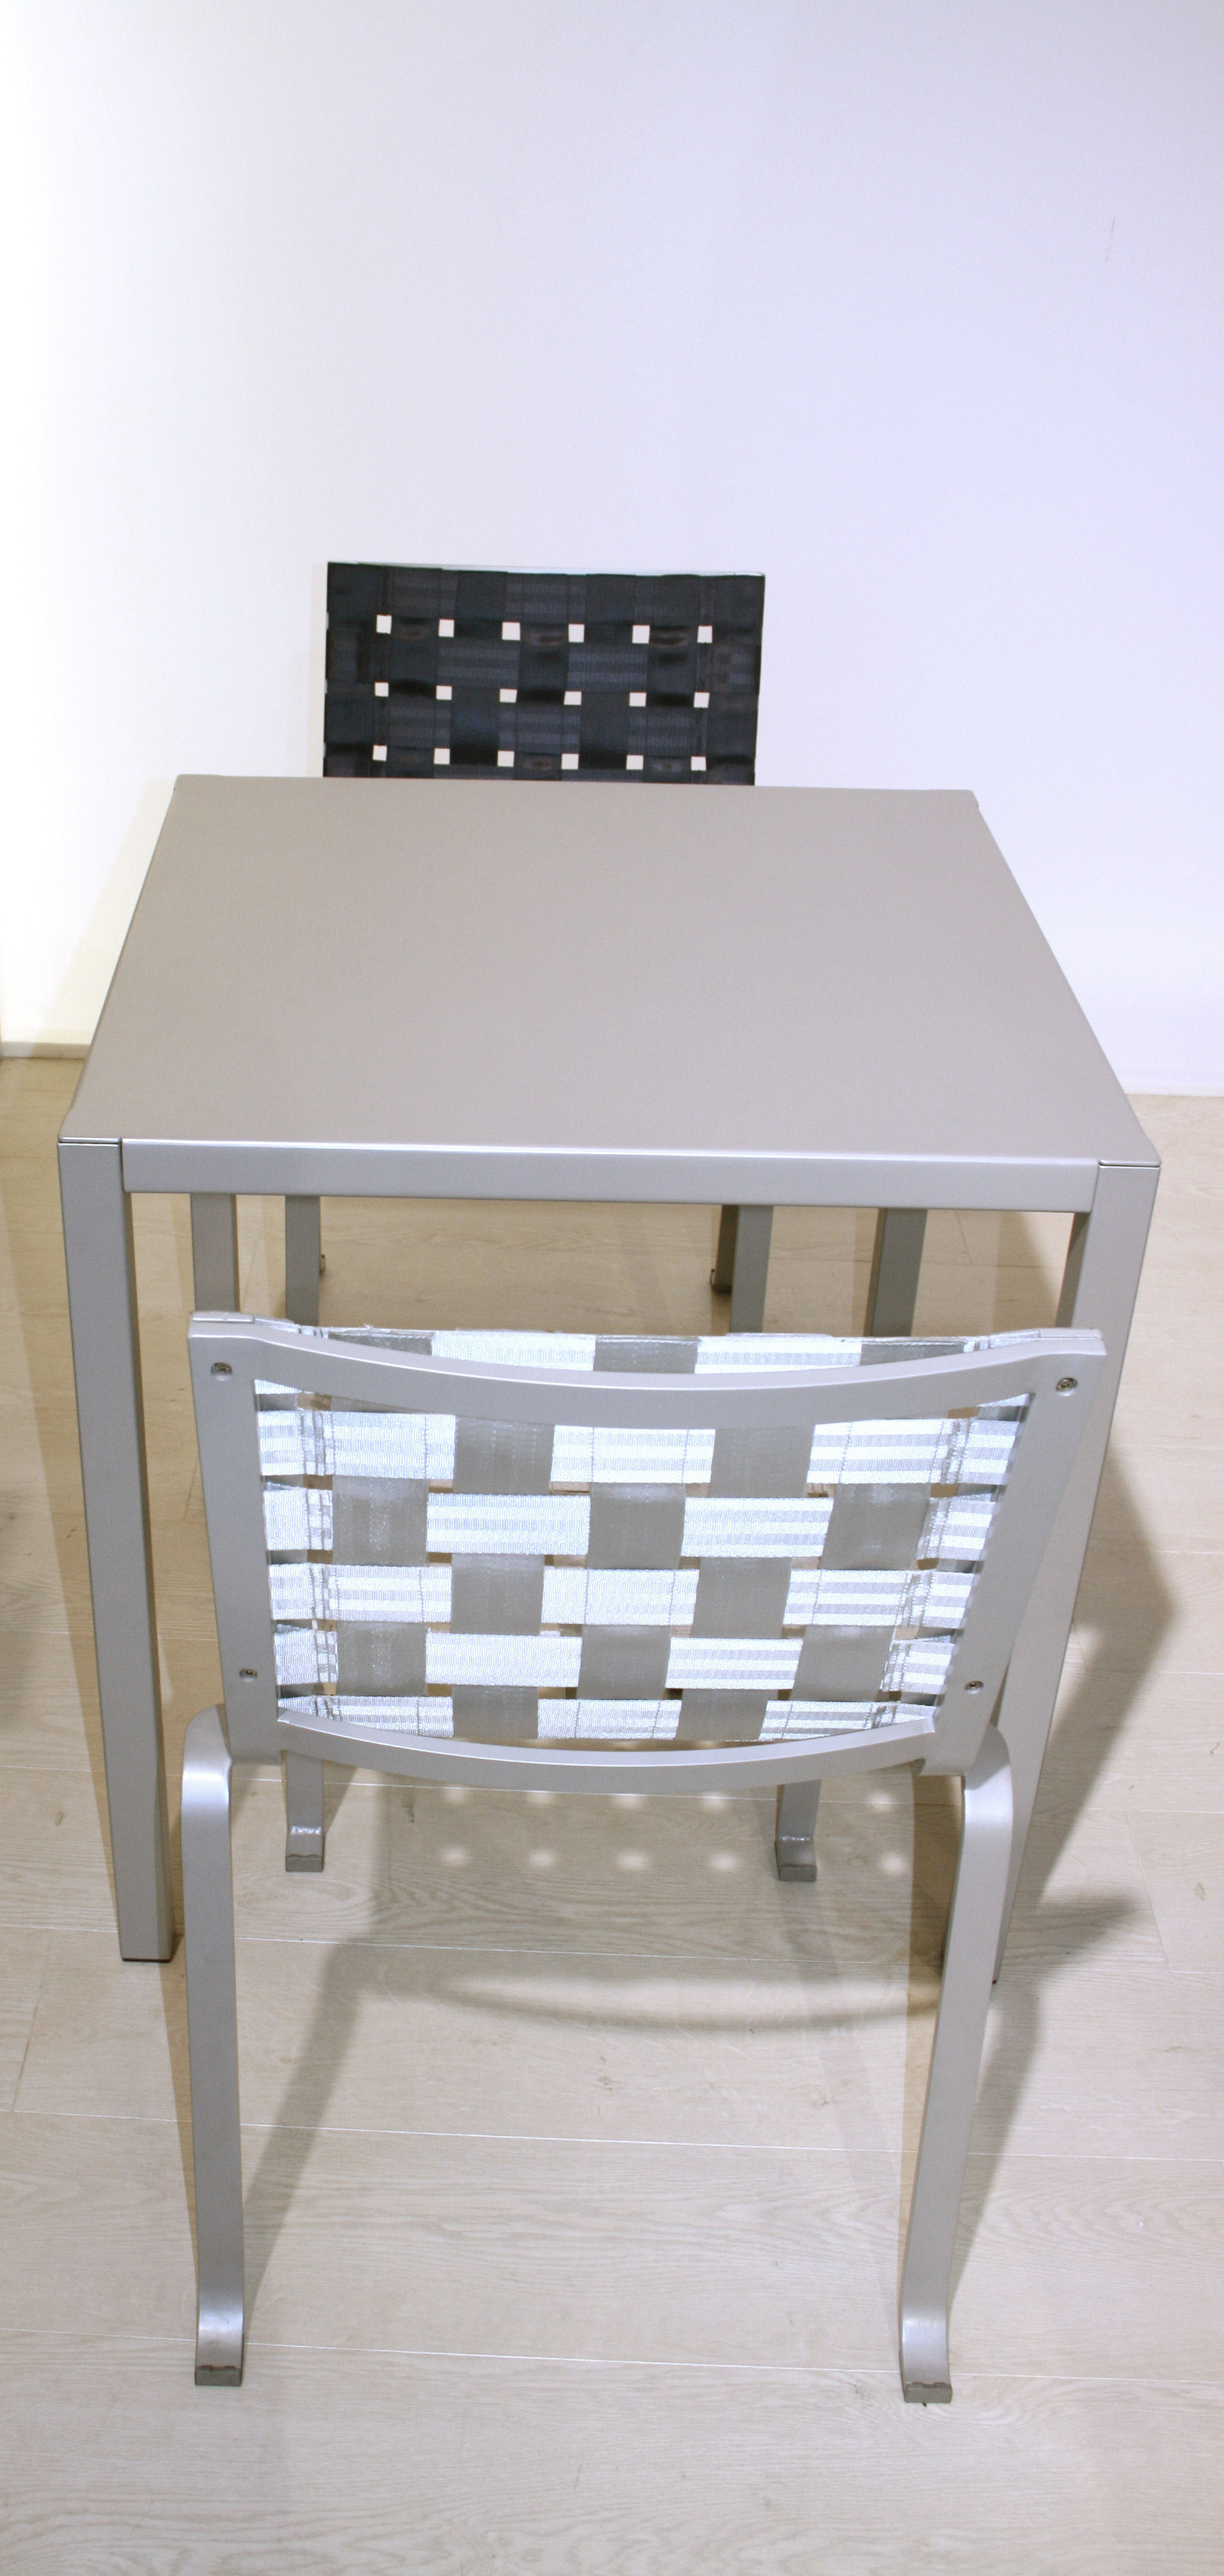 Table inside out by andr e olivia putman 70x70 cm gris for Table 70x70 design